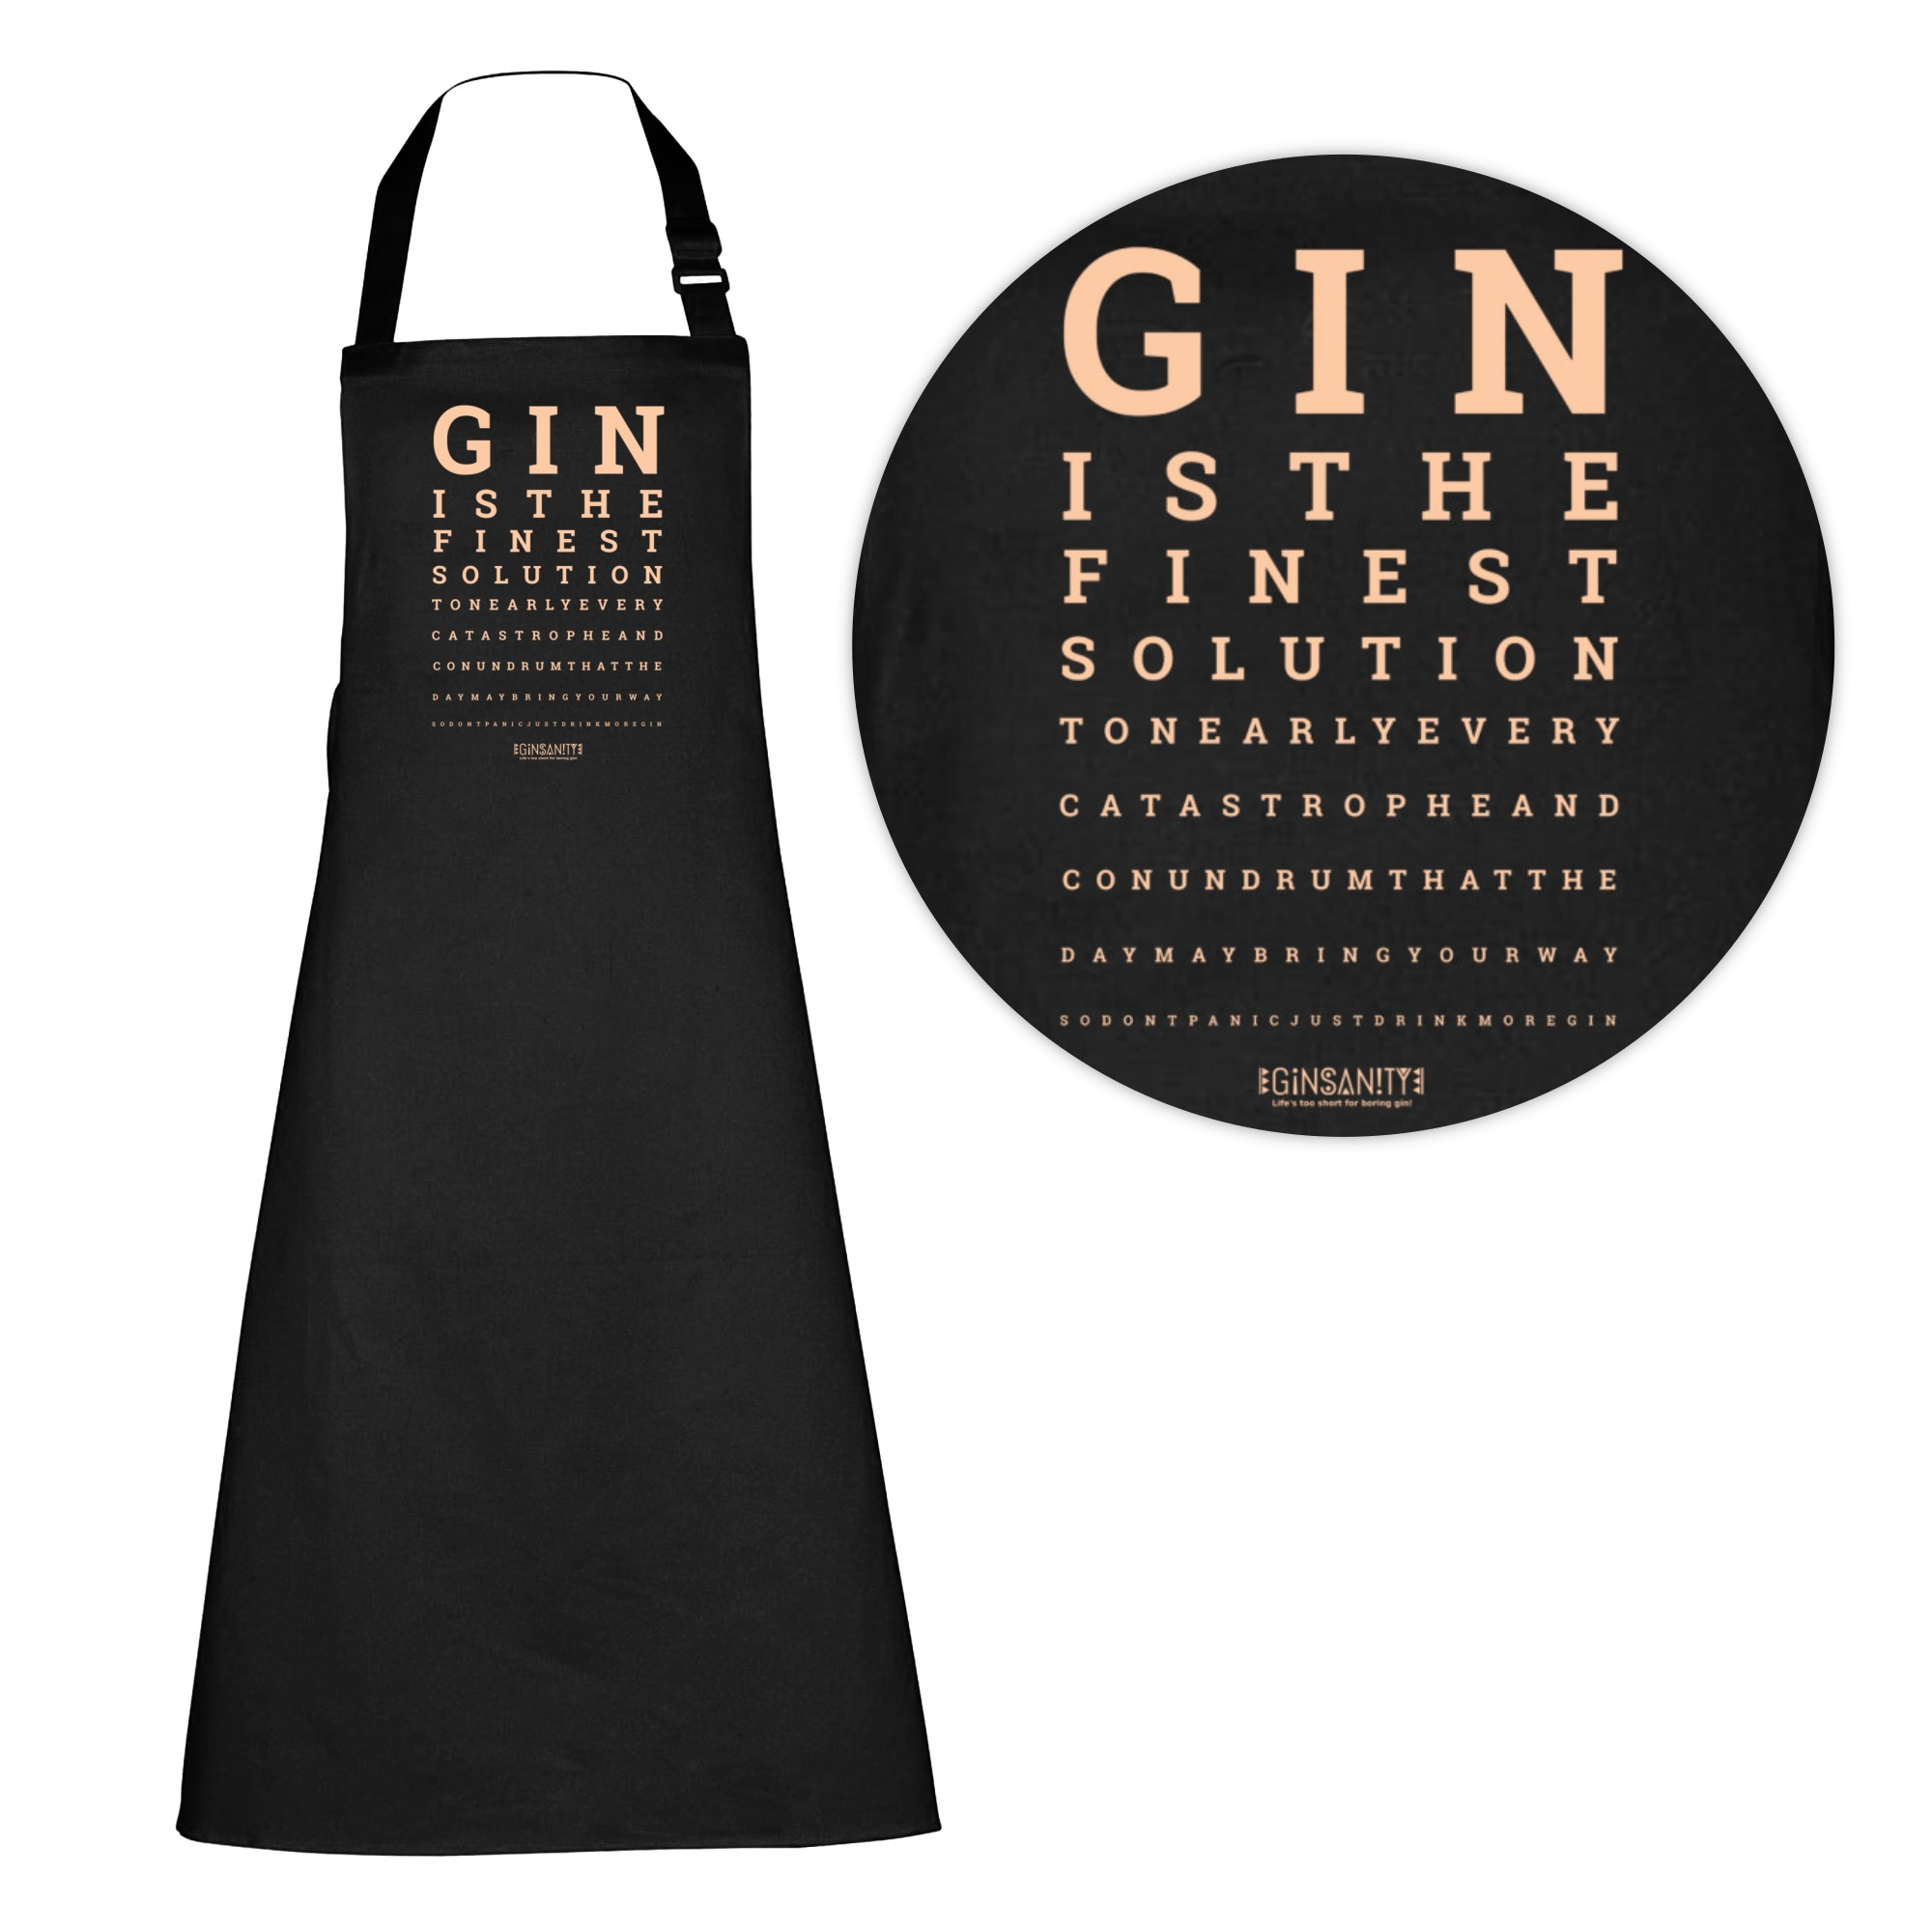 The dress eye test - The Gin Collective Kitchen Aprons The Gin Eye Test